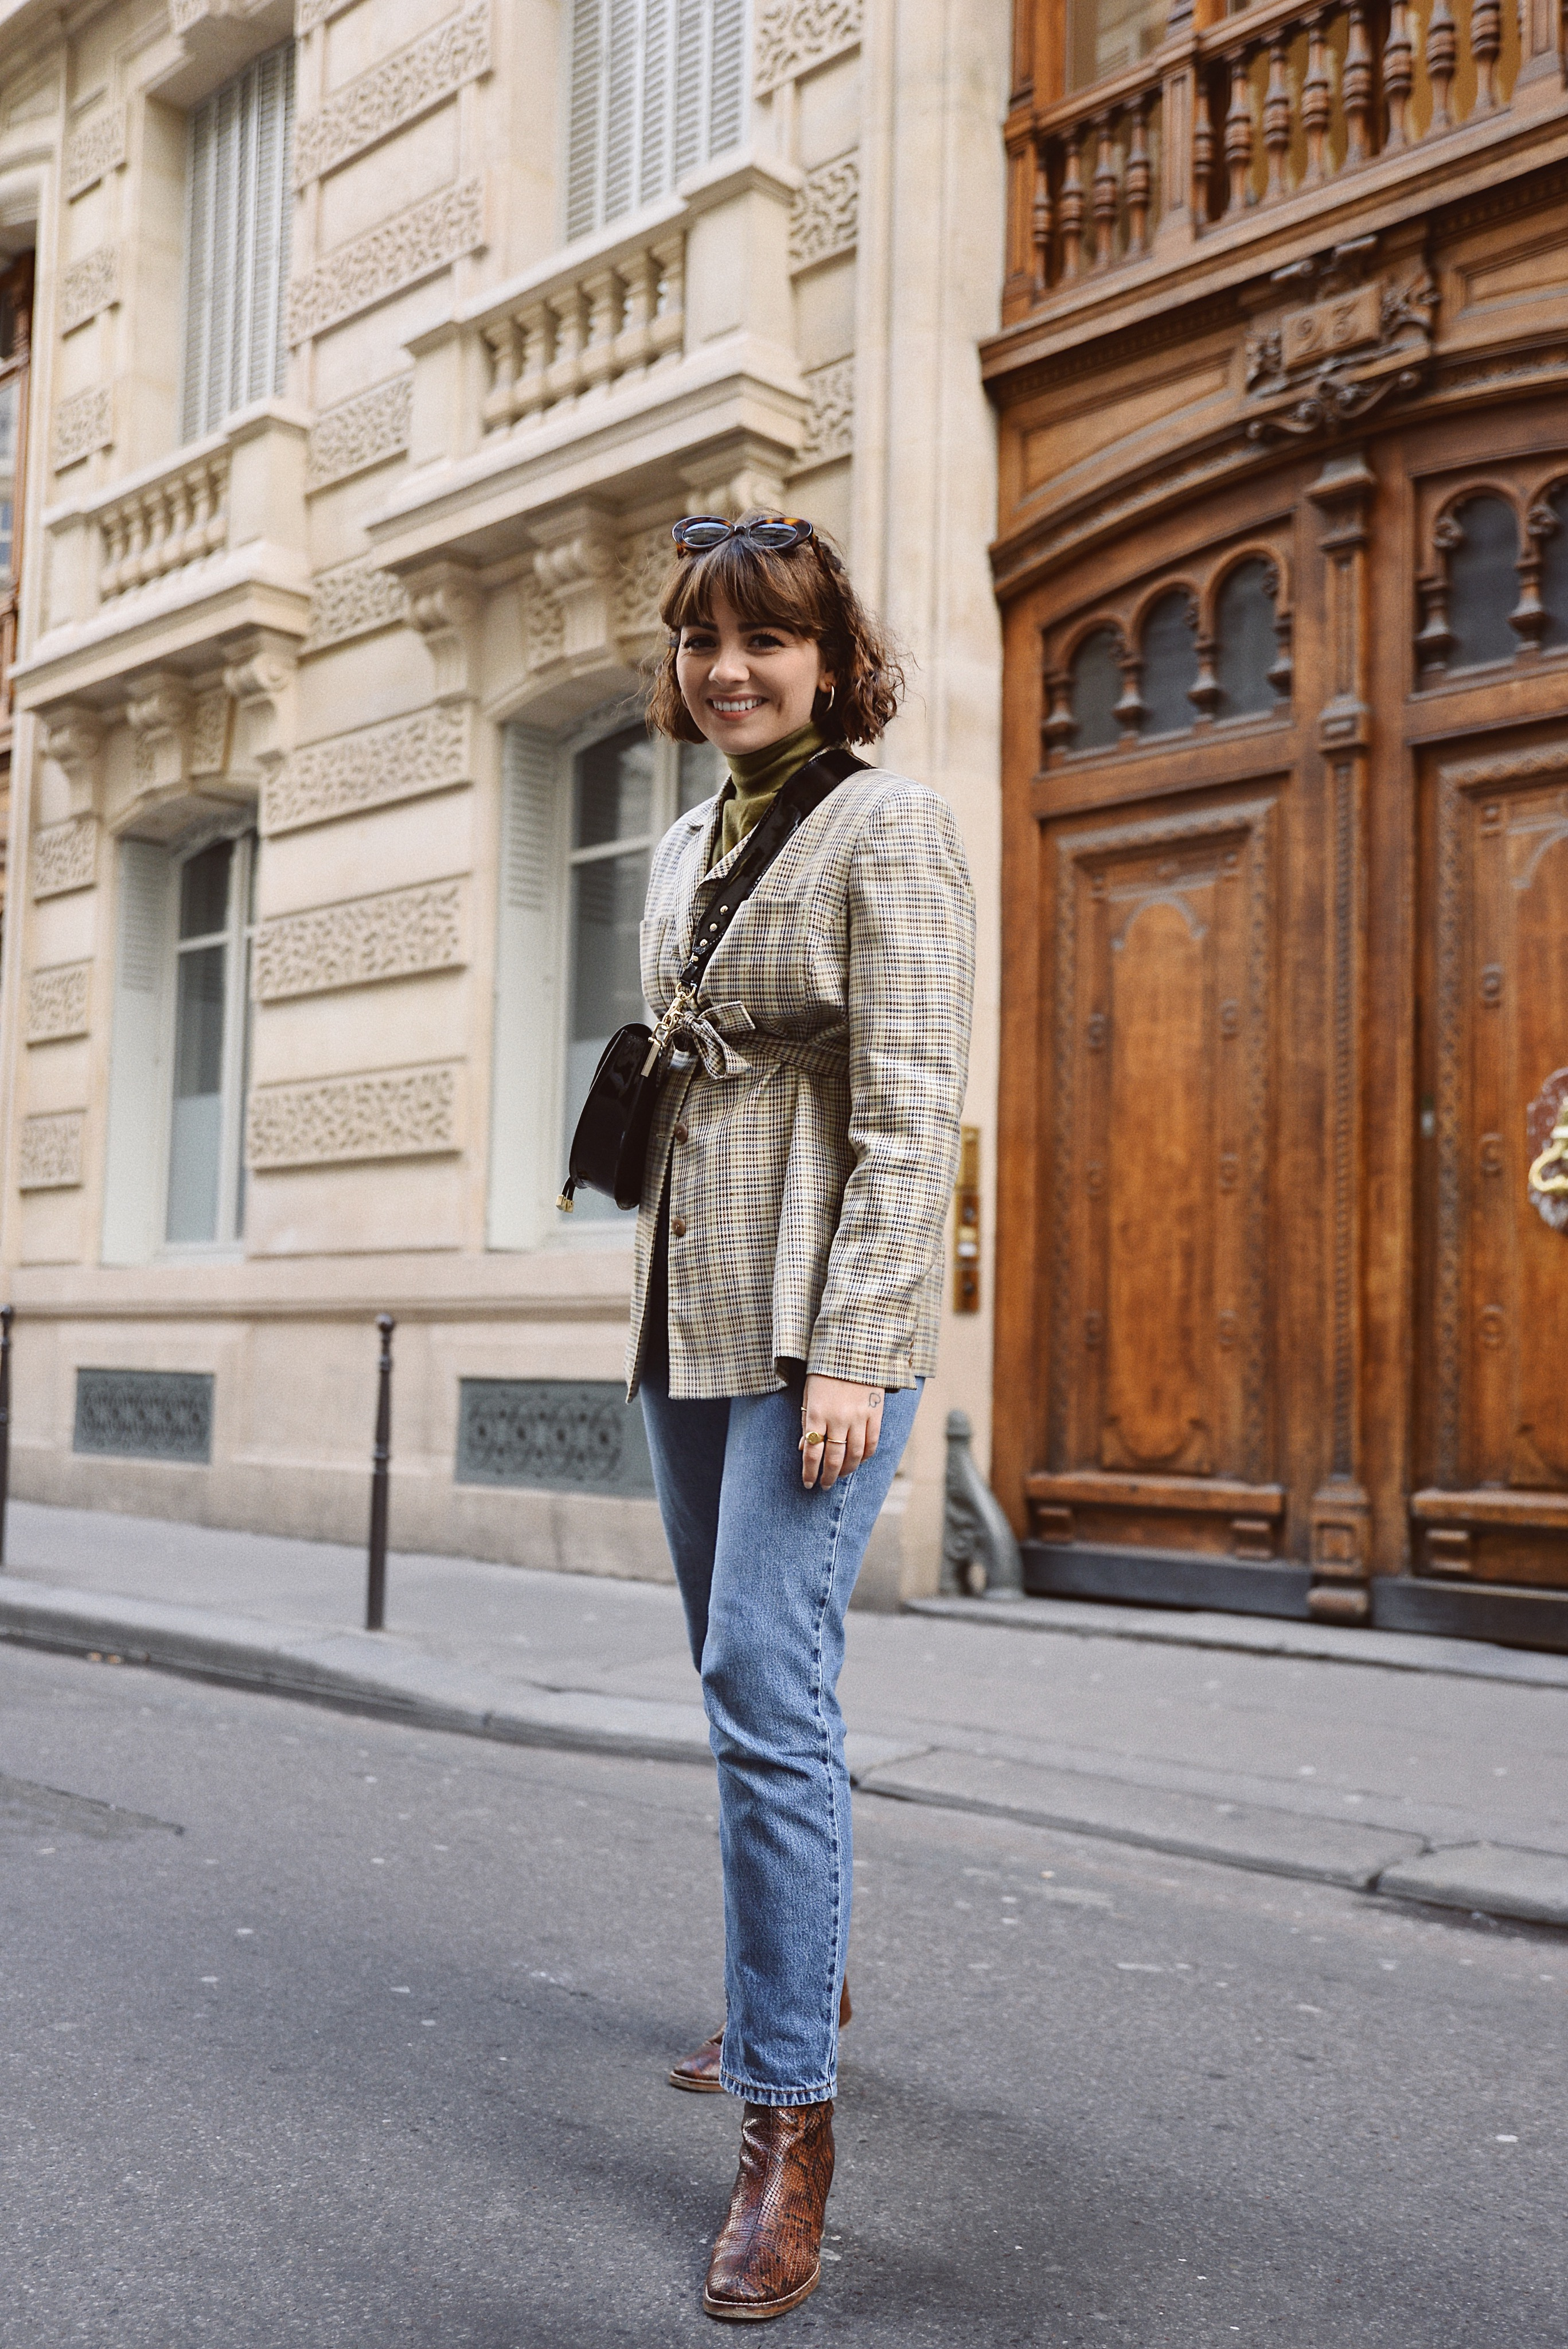 fd74e91e29a2 This year I'm really into layering blazers together with turtlenecks for a  chic oversized look. Since the arrival of the belted blazer/belted  everything ...